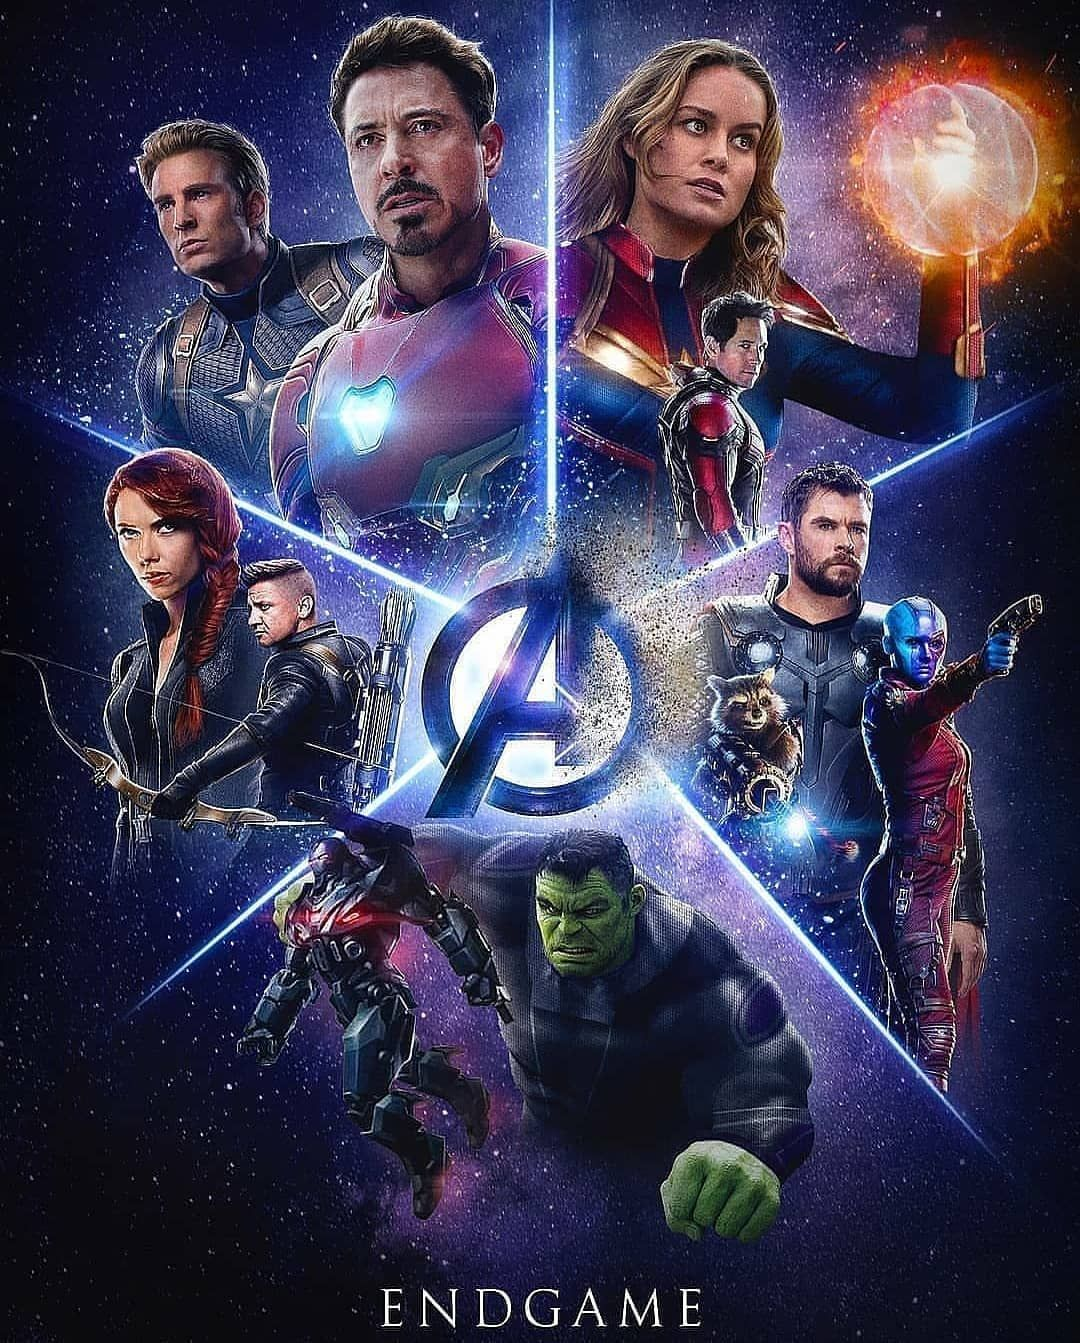 Poster Fan Art De Avengers 4 Mcu Dceu Pinterest Marvel Iron Man Circuit Superhros Comics Logostore Characters Movies Heroes